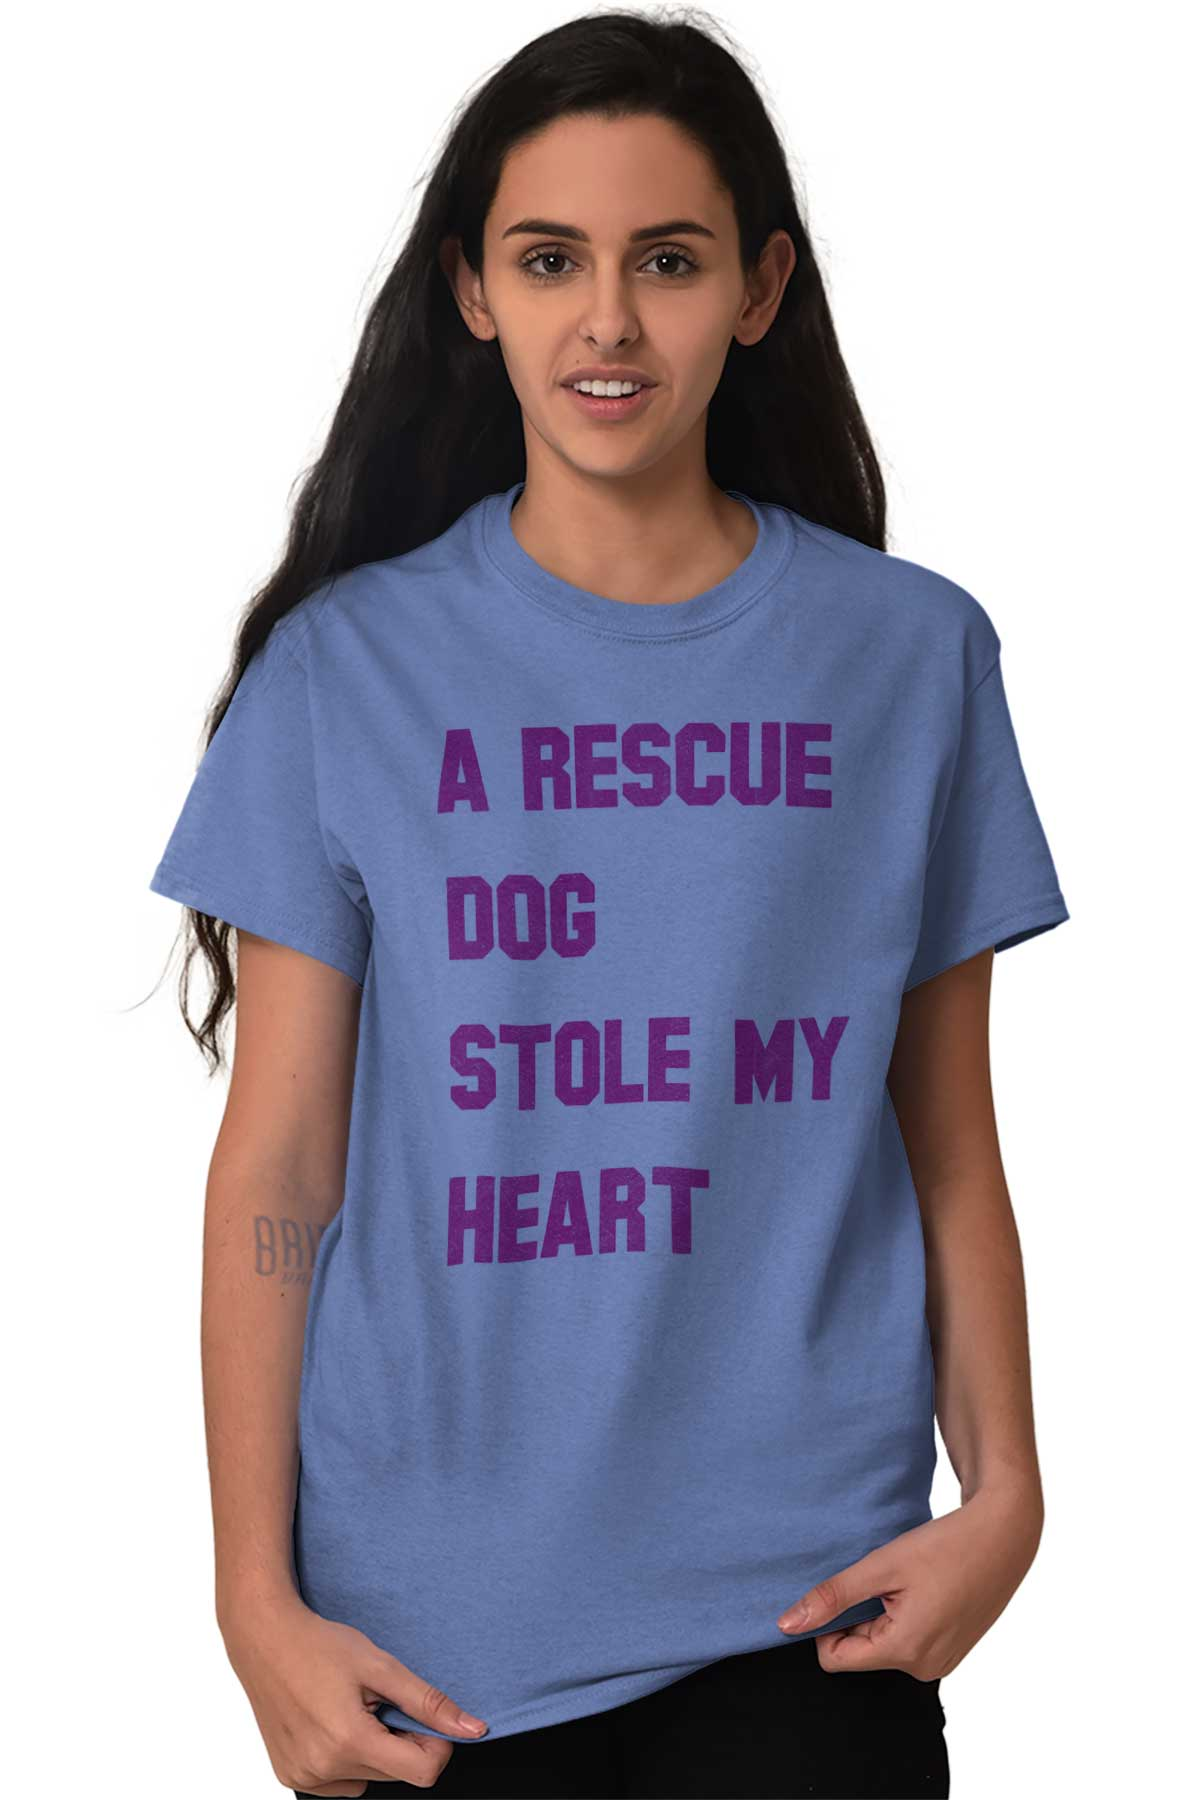 Love Pets Polo Tshirt Embroidered Women/'s Polo Shirt Details about  /Dogs Lover Polo Tshirt